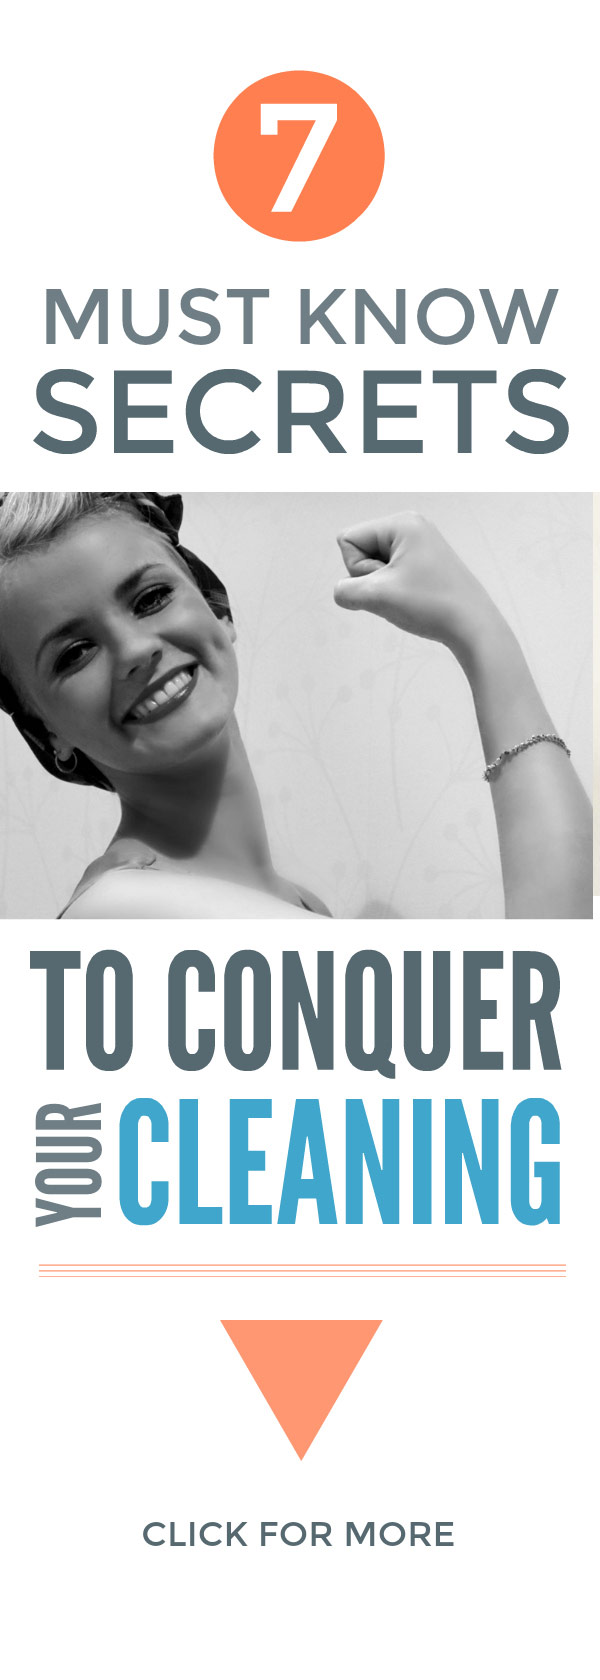 Seven must know easy deep cleaning hacks to keep on top of household mess including tips and tricks for the bathroom, bedroom and kitchen and make spring cleaning so much easier #cleaninghacks #cleaning #hacks #lifehacks #springcleaning